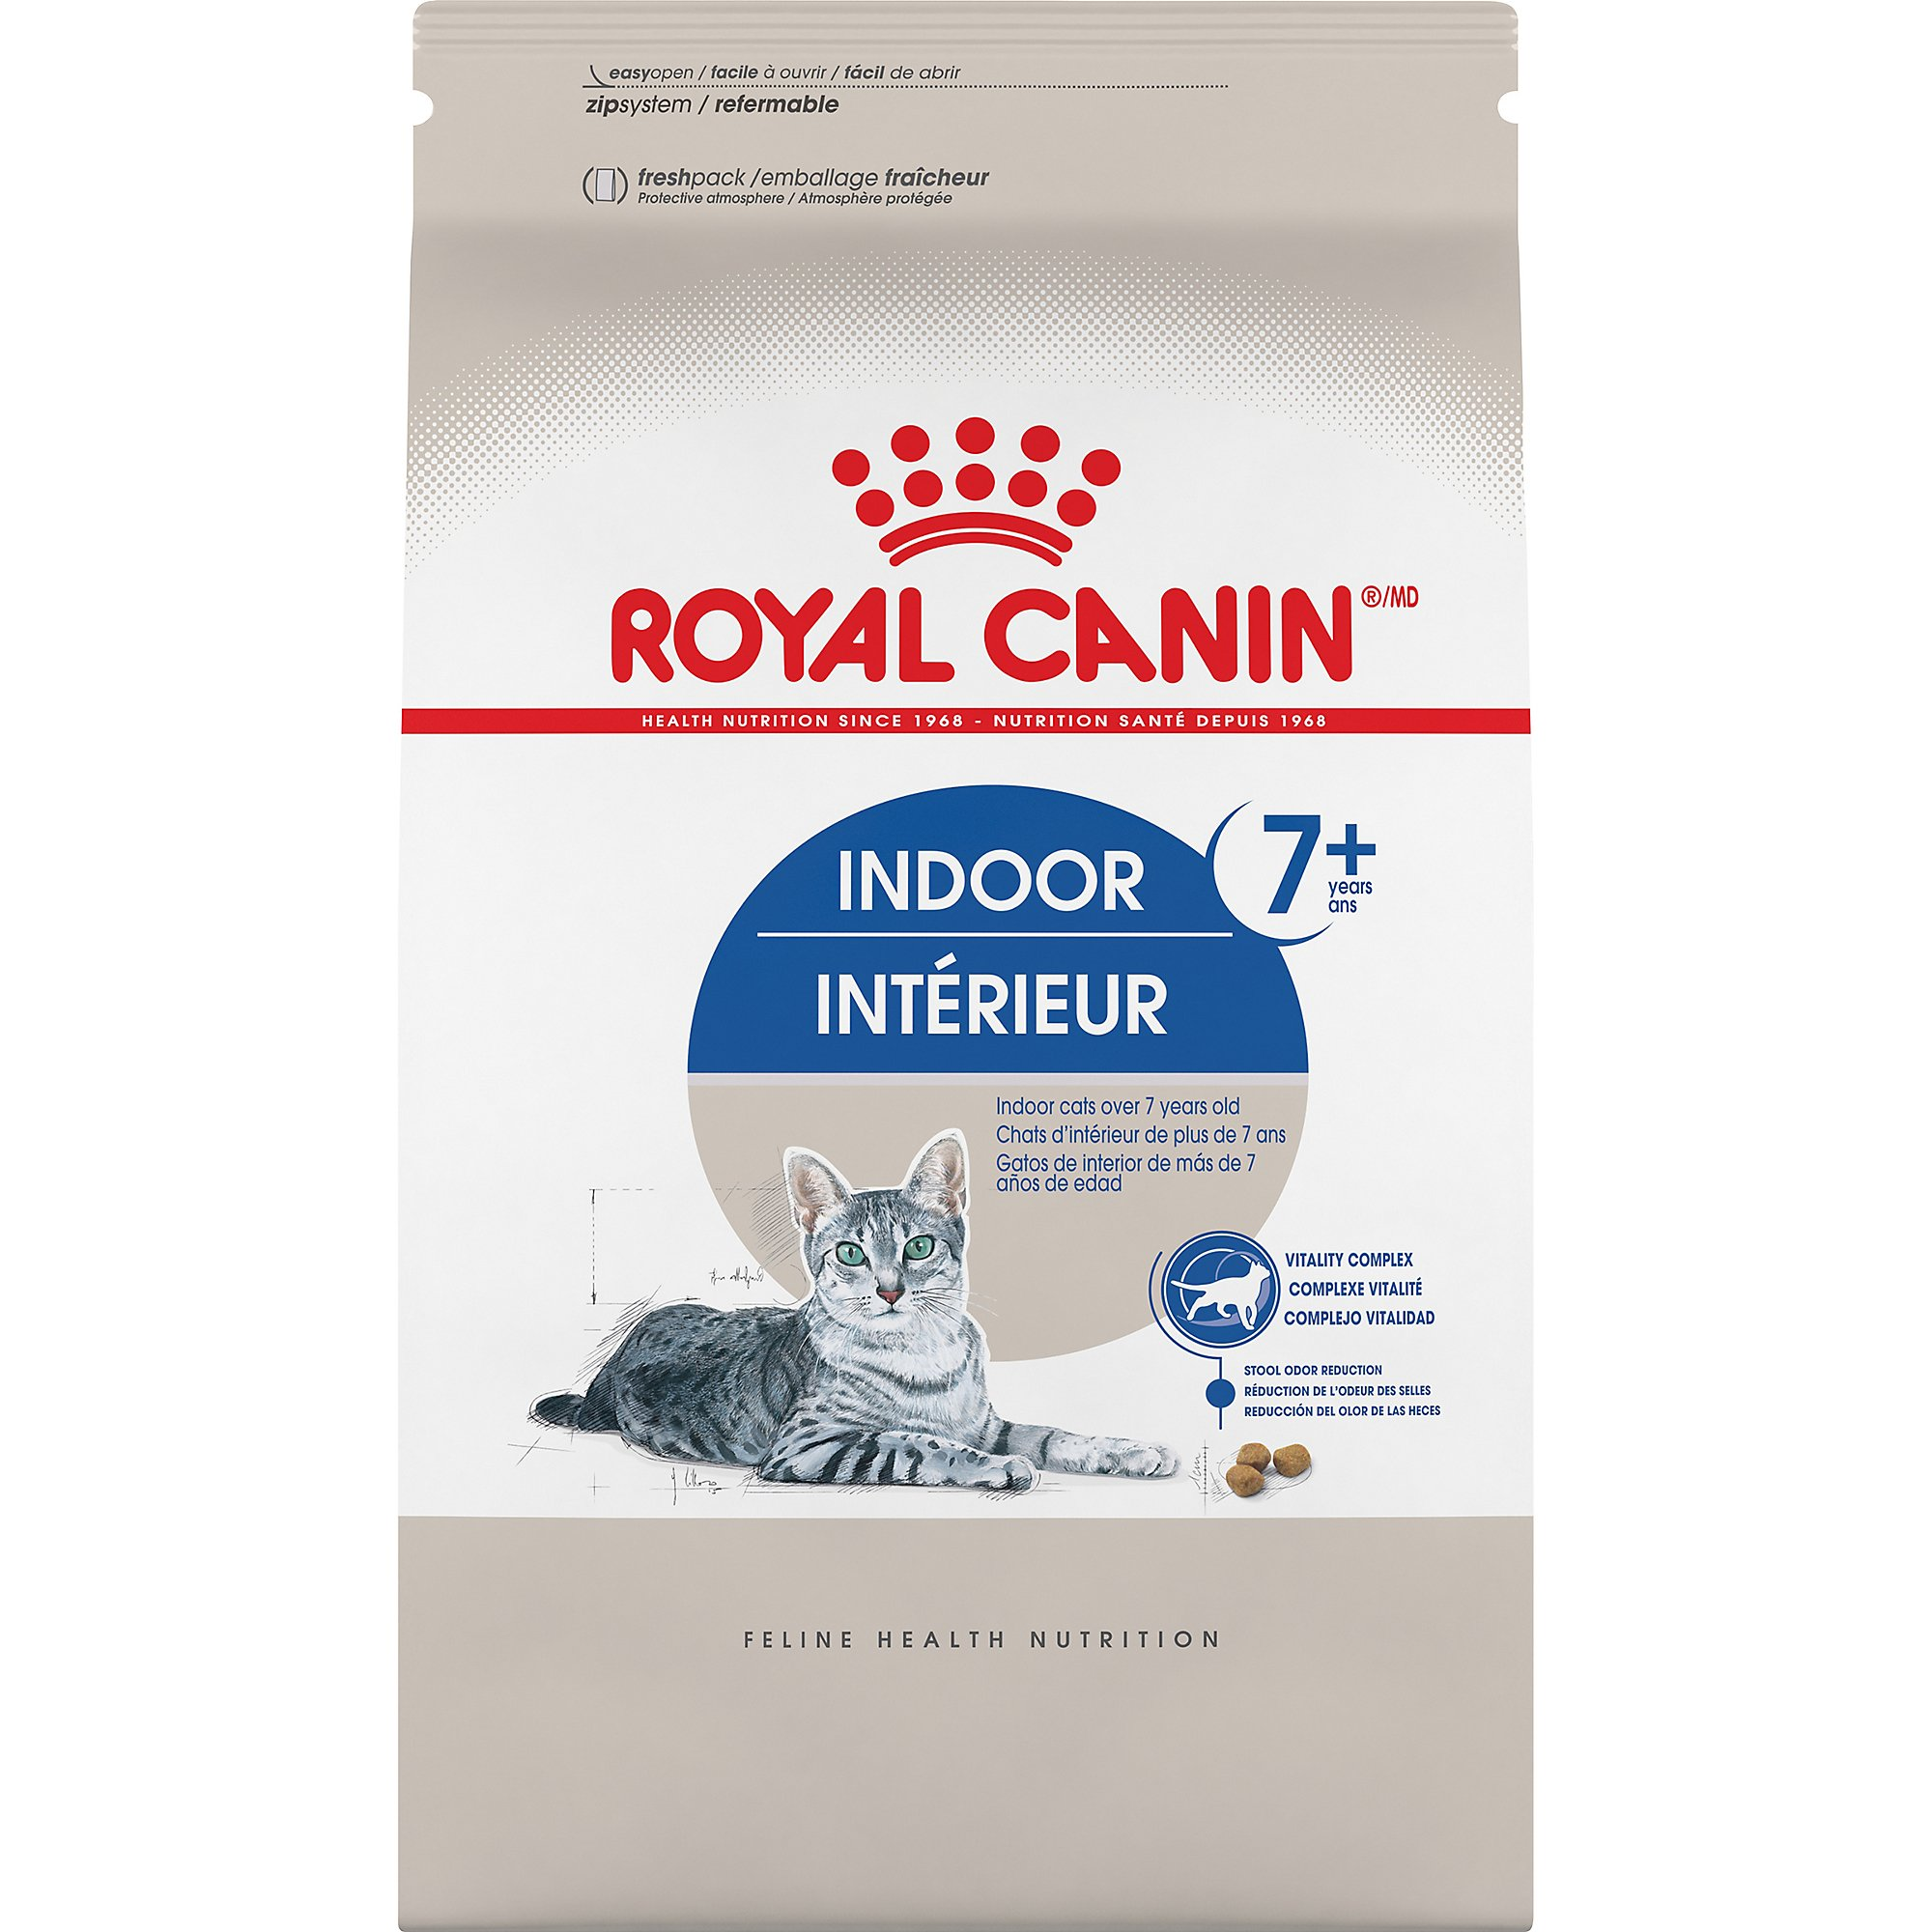 Royal Canin Feline Health Nutrition Indoor 7+ Adult Dry Cat Food